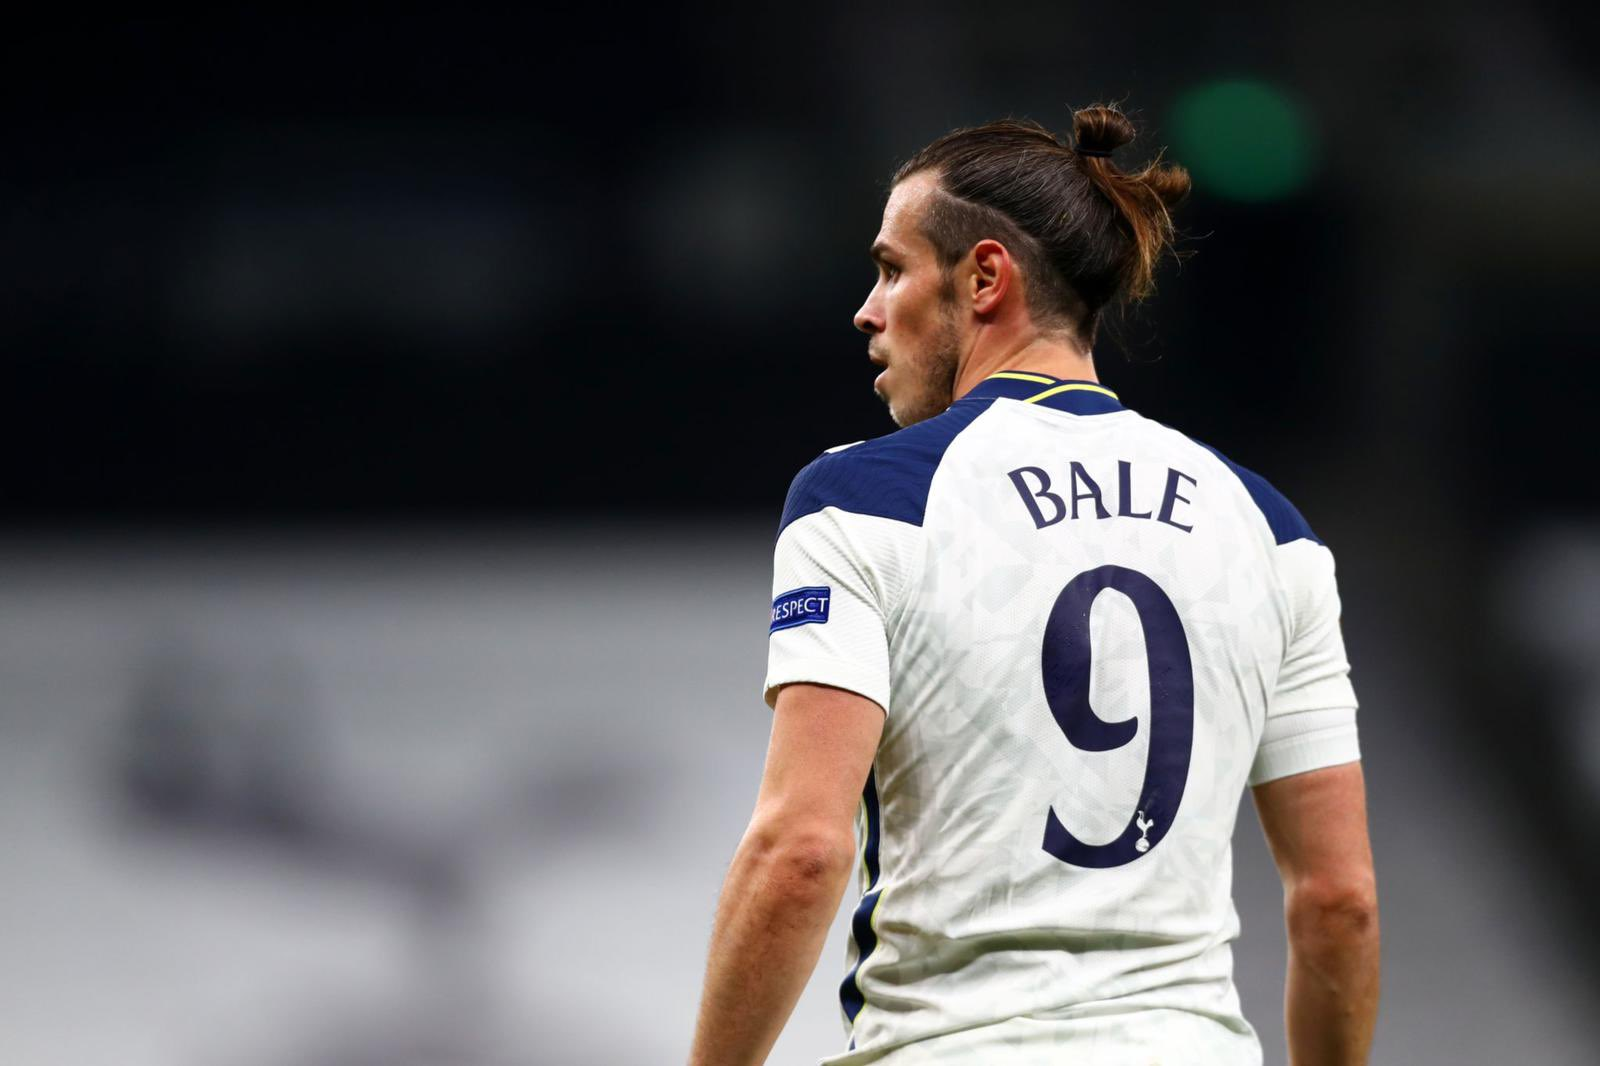 Bale joined Tottenham in the summer of 2020 on a loan move from Madrid.